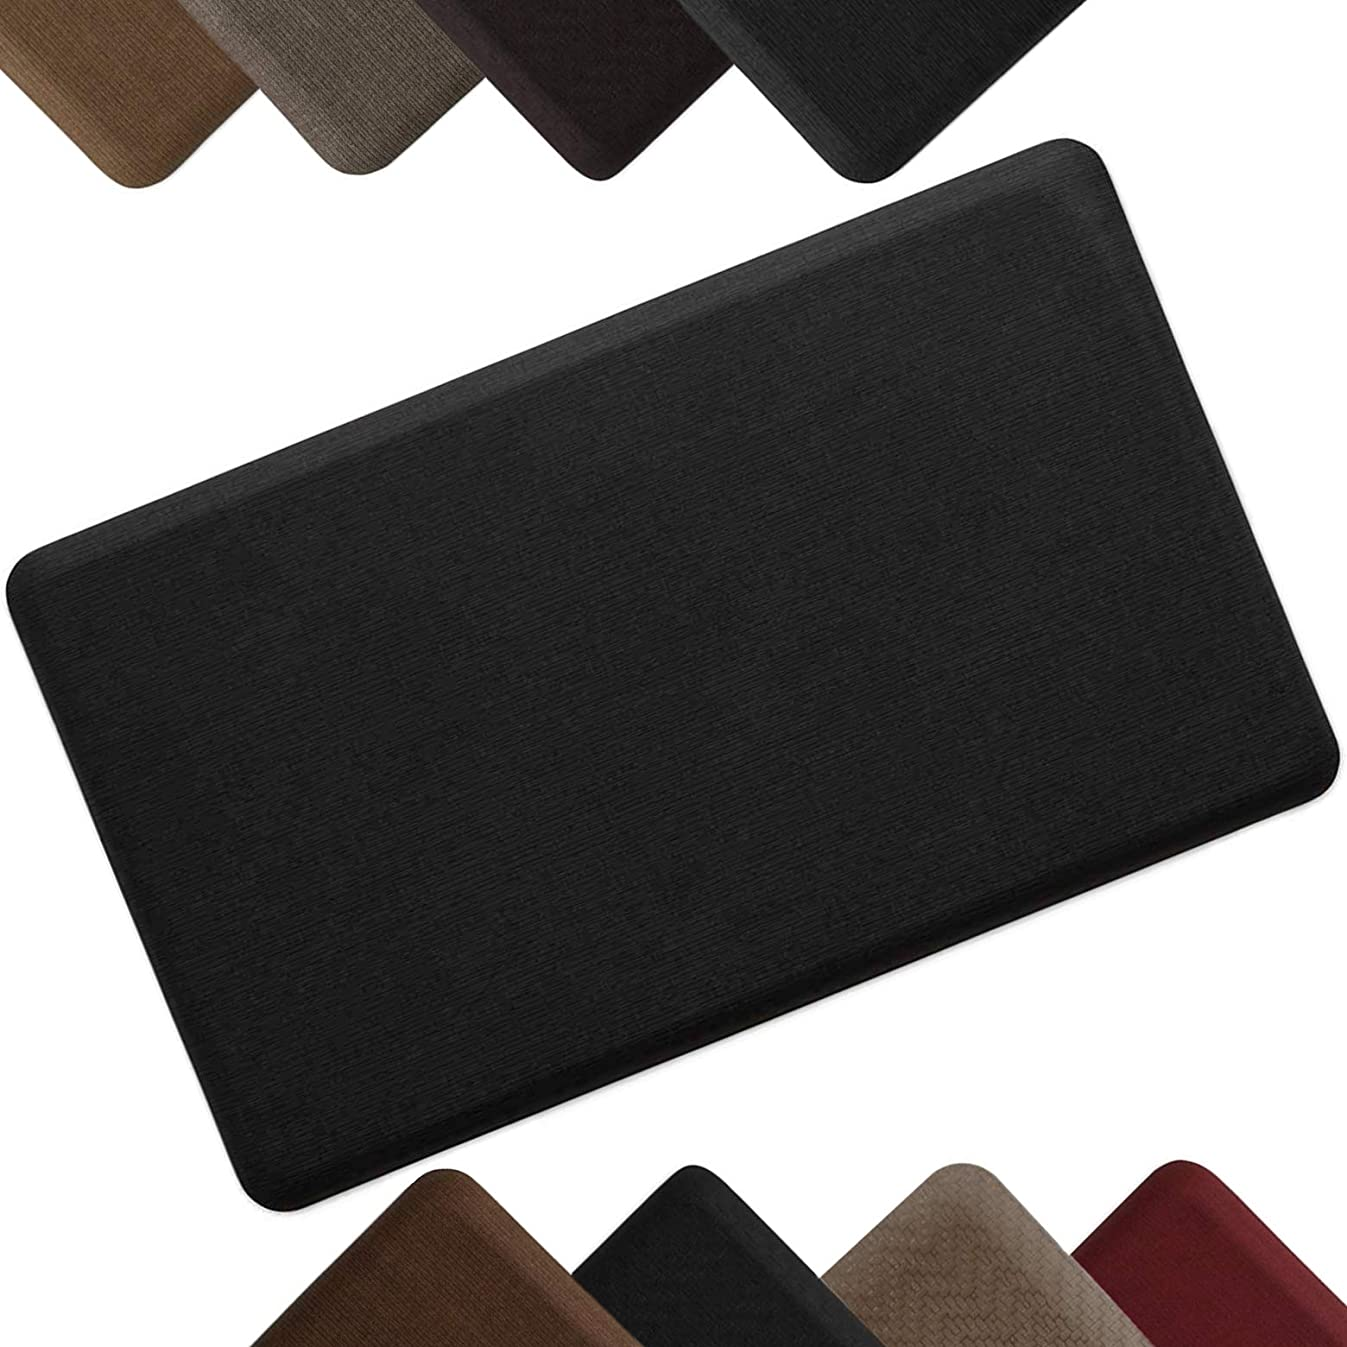 "NewLife by GelPro Anti-Fatigue Designer Comfort Kitchen Floor Mat Stain Resistant Surface with 5/8"" thick ergo-foam core for health and wellness,18x30 Grasscloth Charcoal"